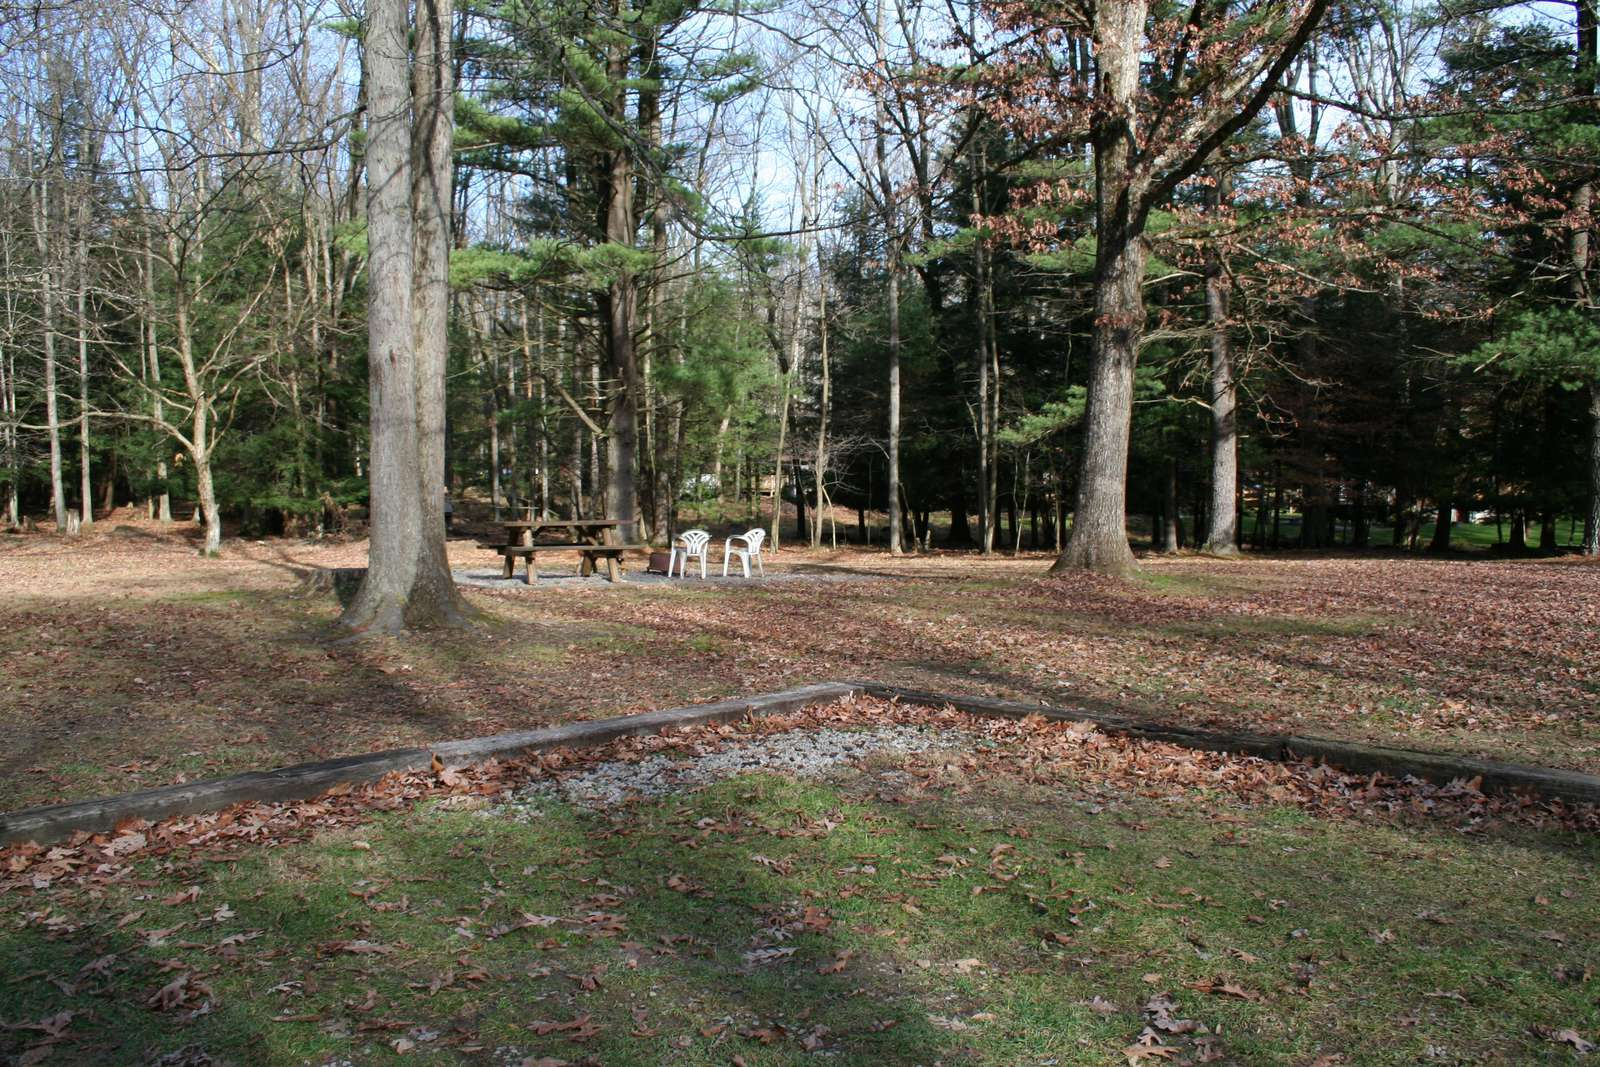 View from the side of Old Hickory Cabin showing the picnic area